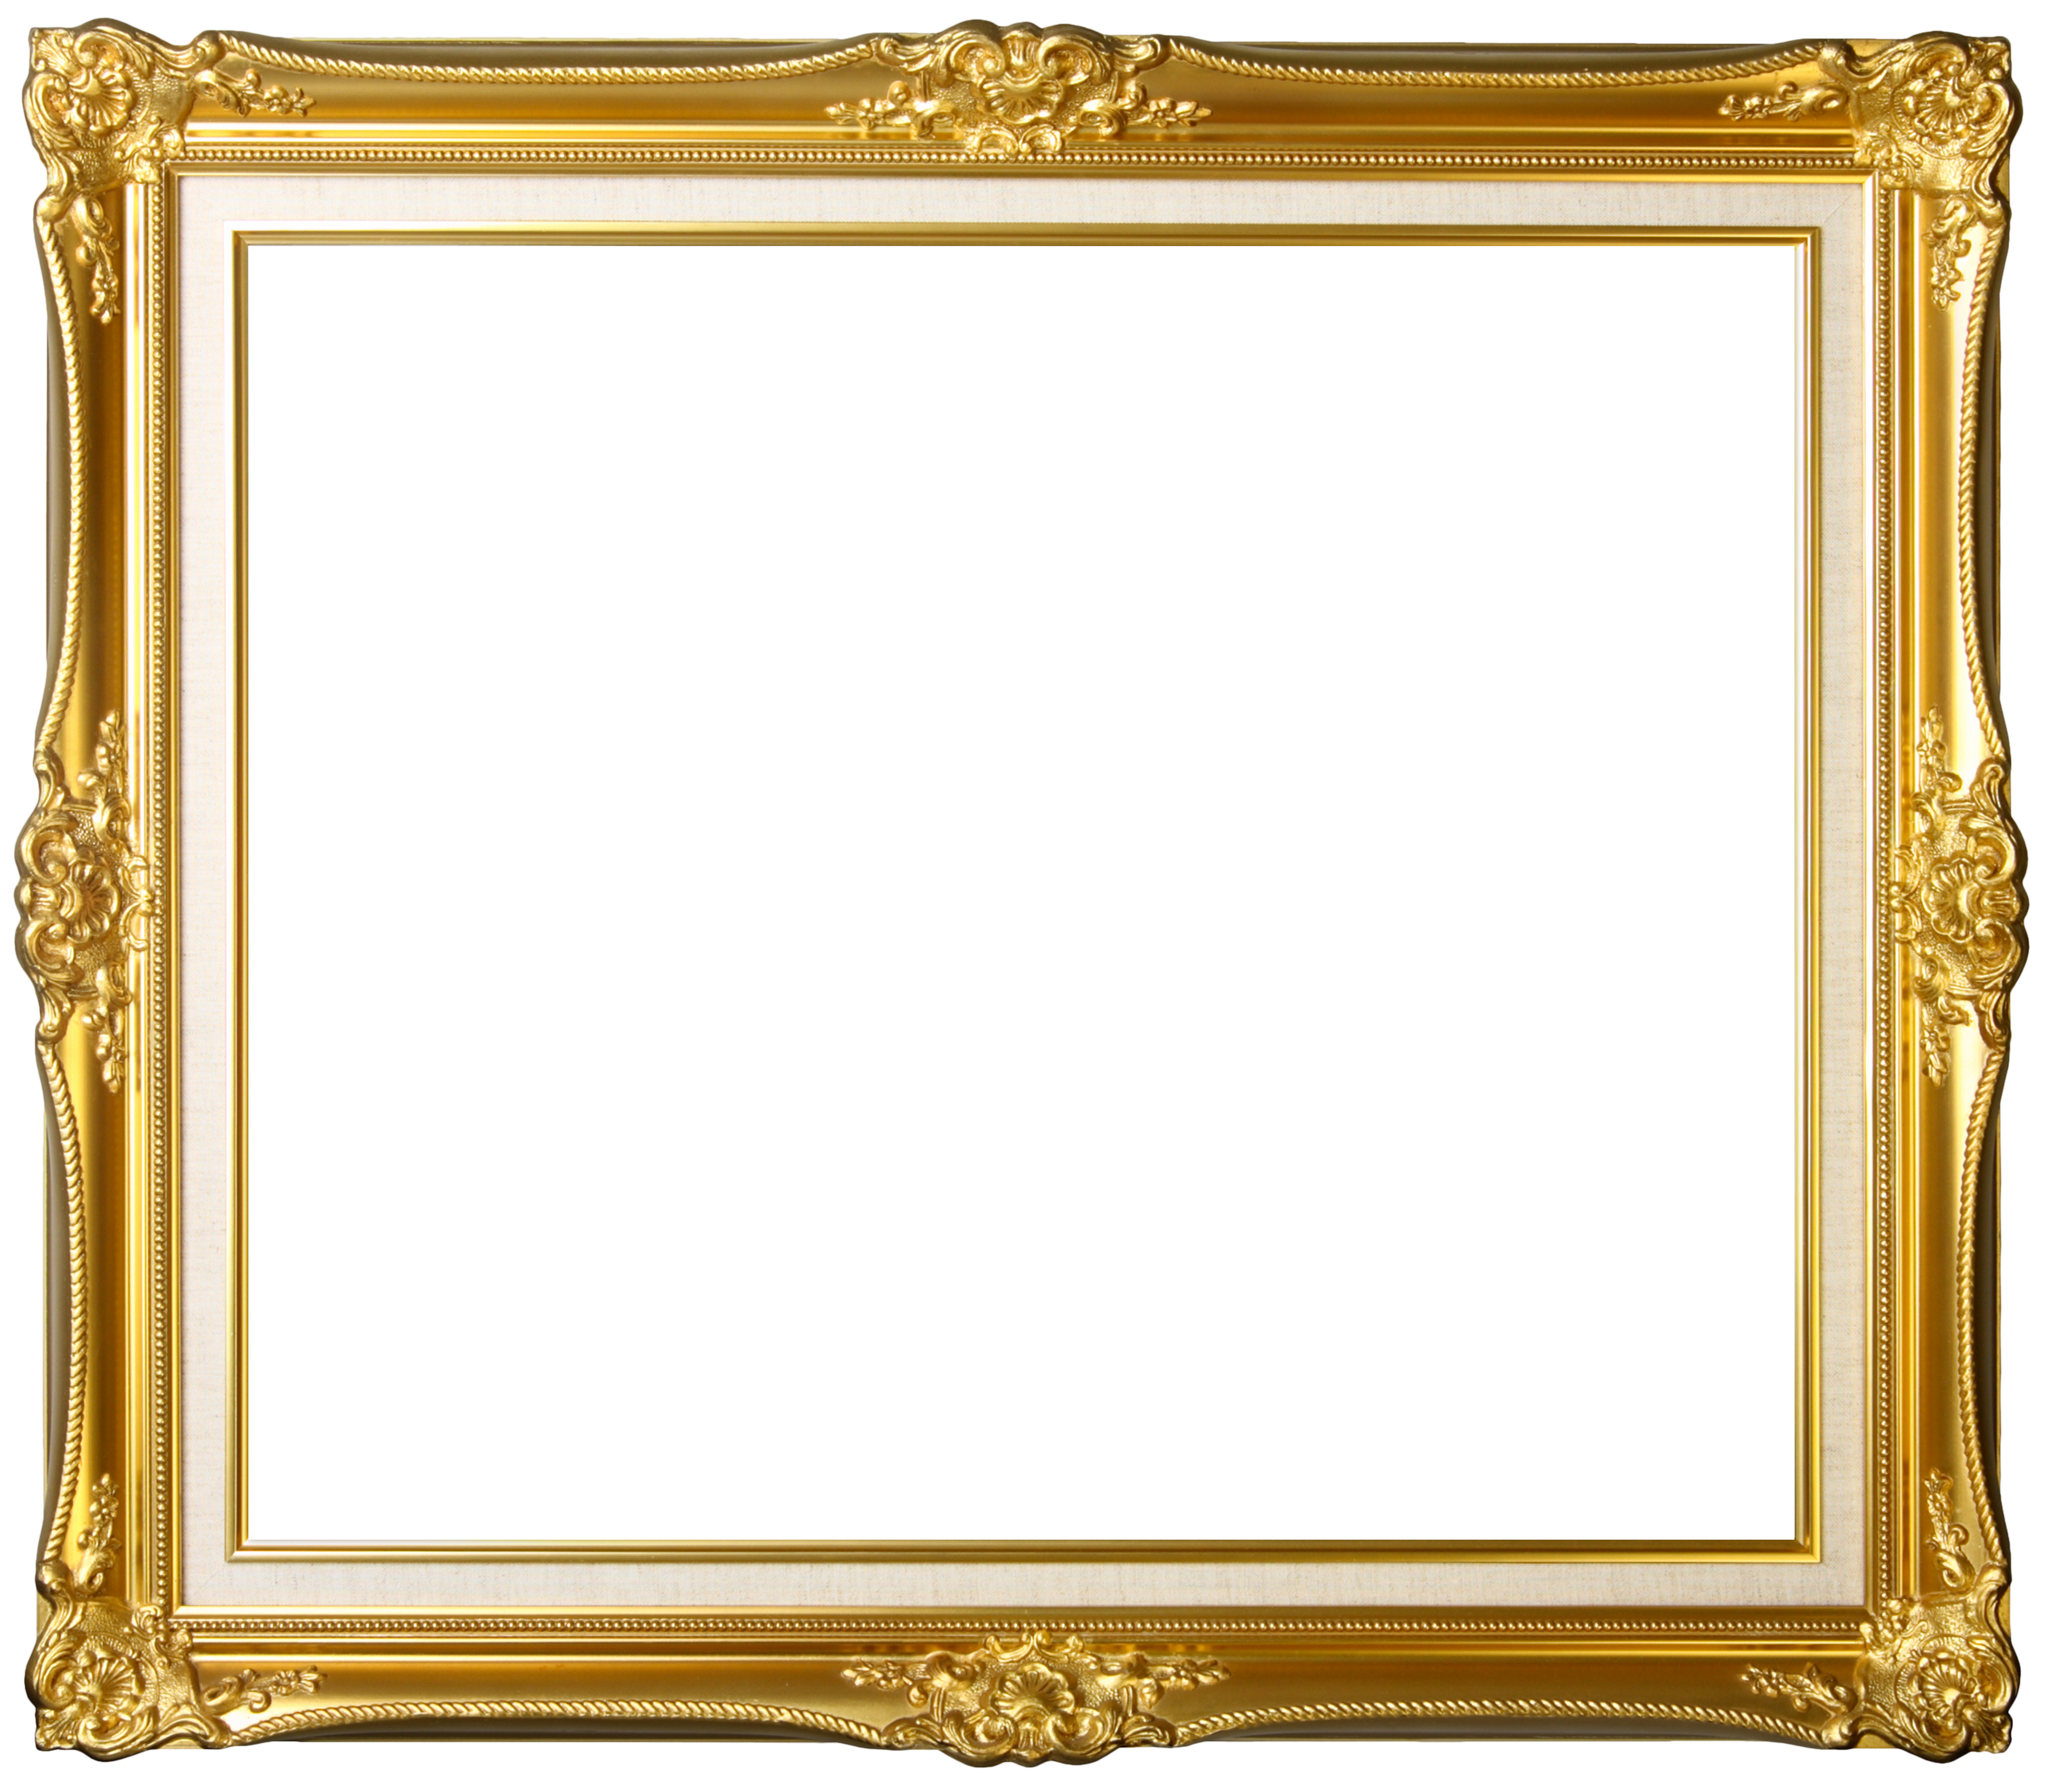 Gold picture frame png. Transparent image gallery yopriceville